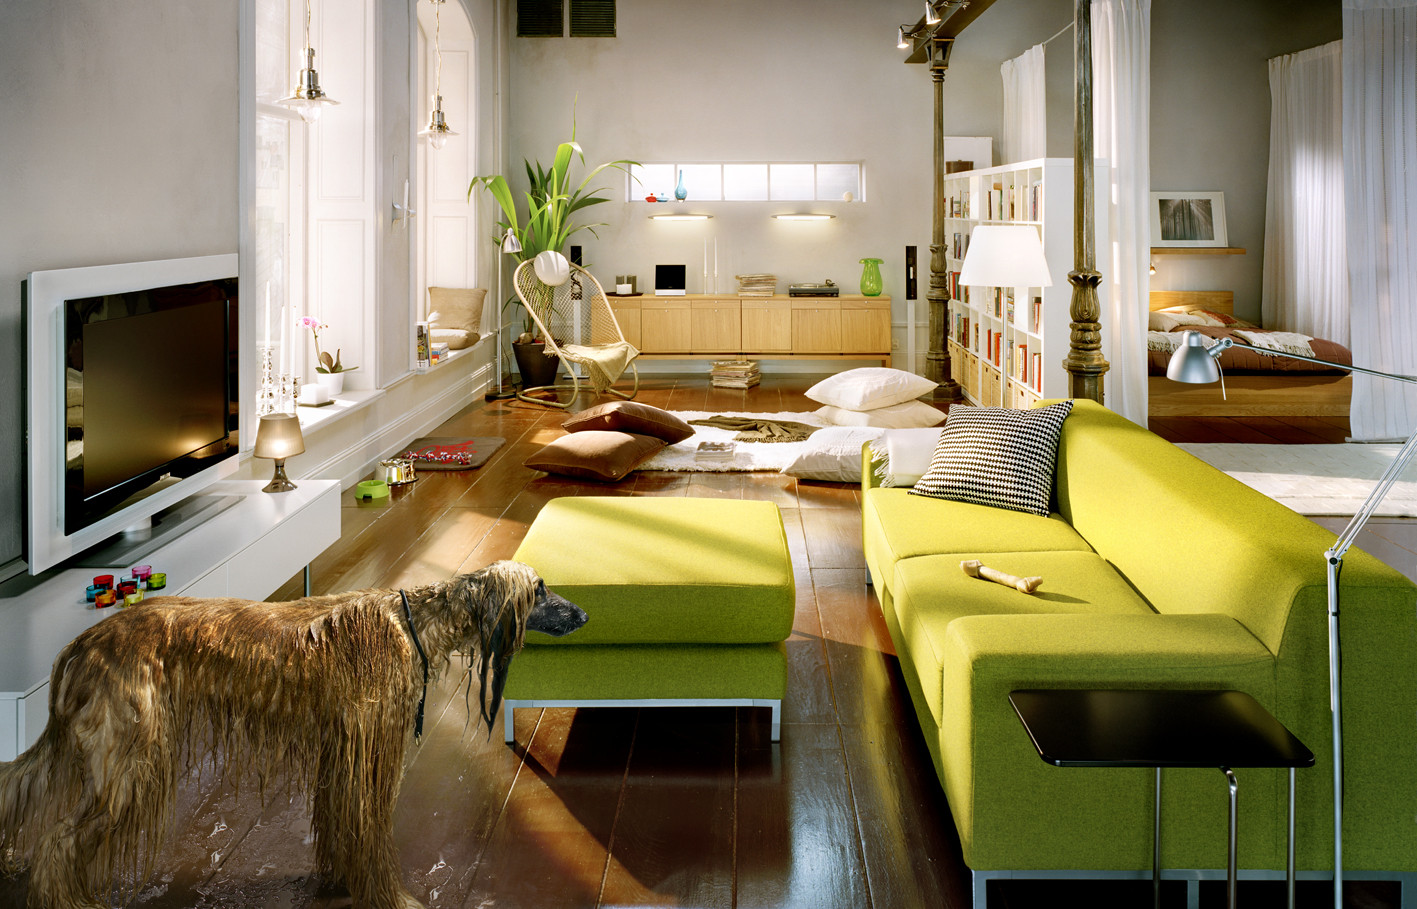 Best ideas about Decor Ideas For Family Room . Save or Pin Family Room Design Ideas Now.